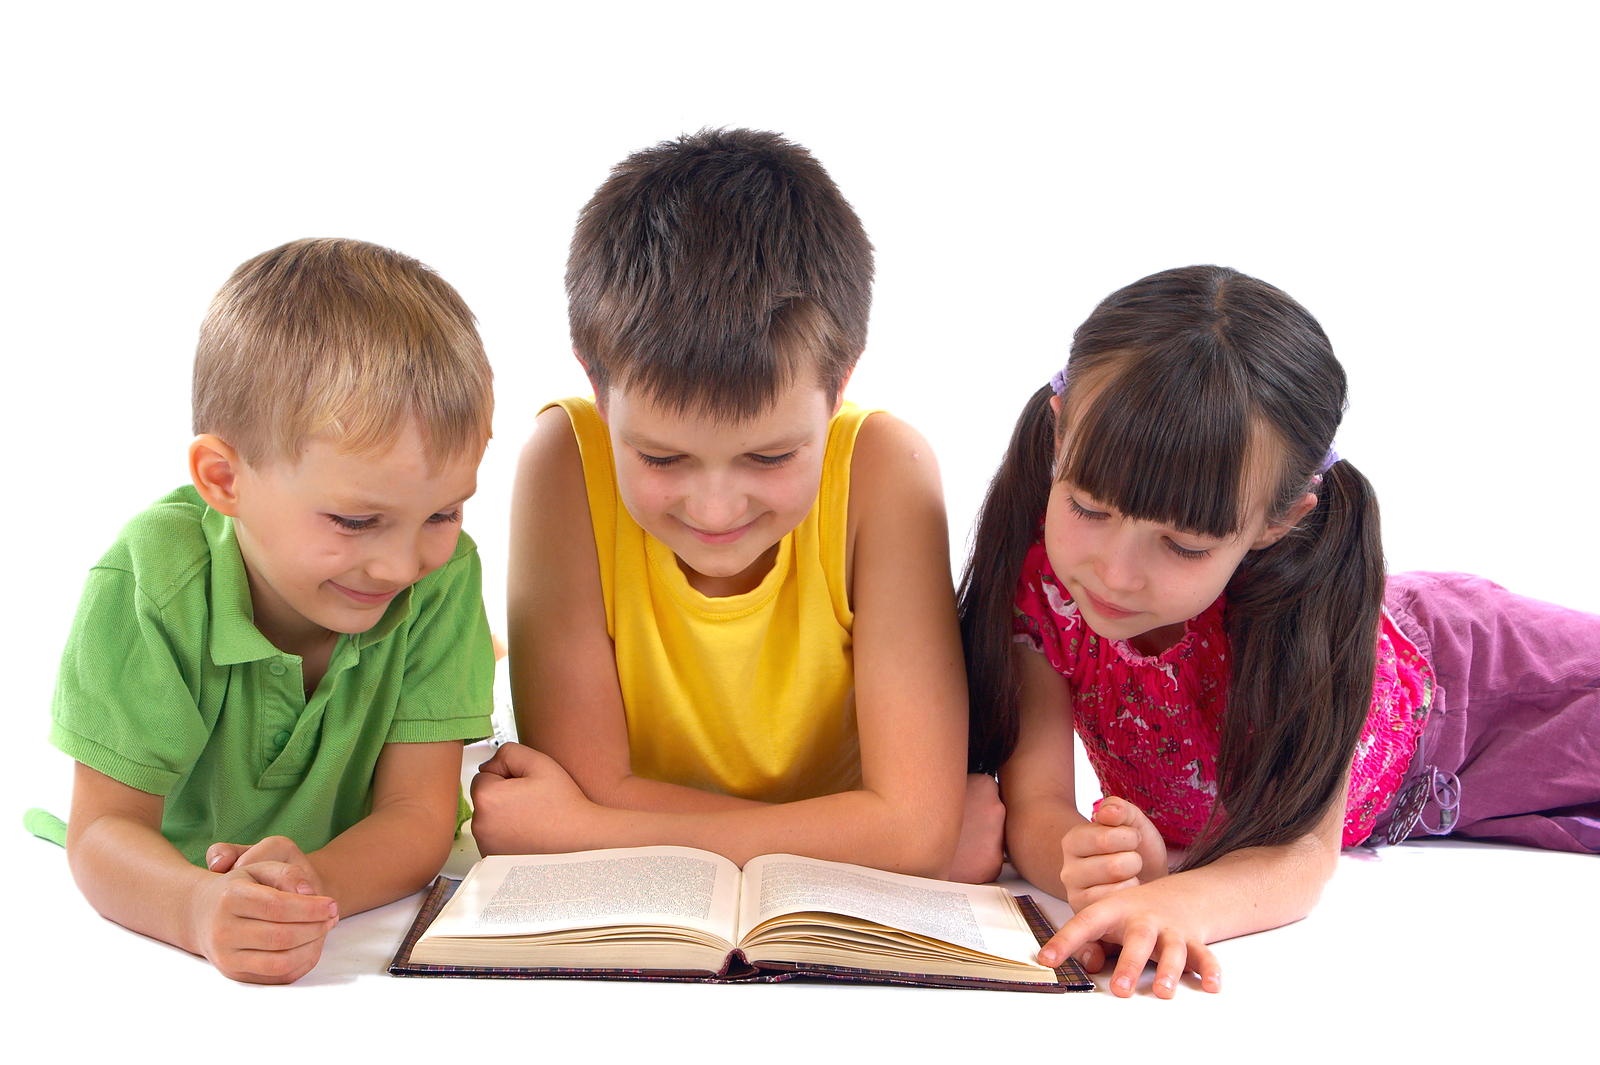 Kid reading png. Hd of kids transparent